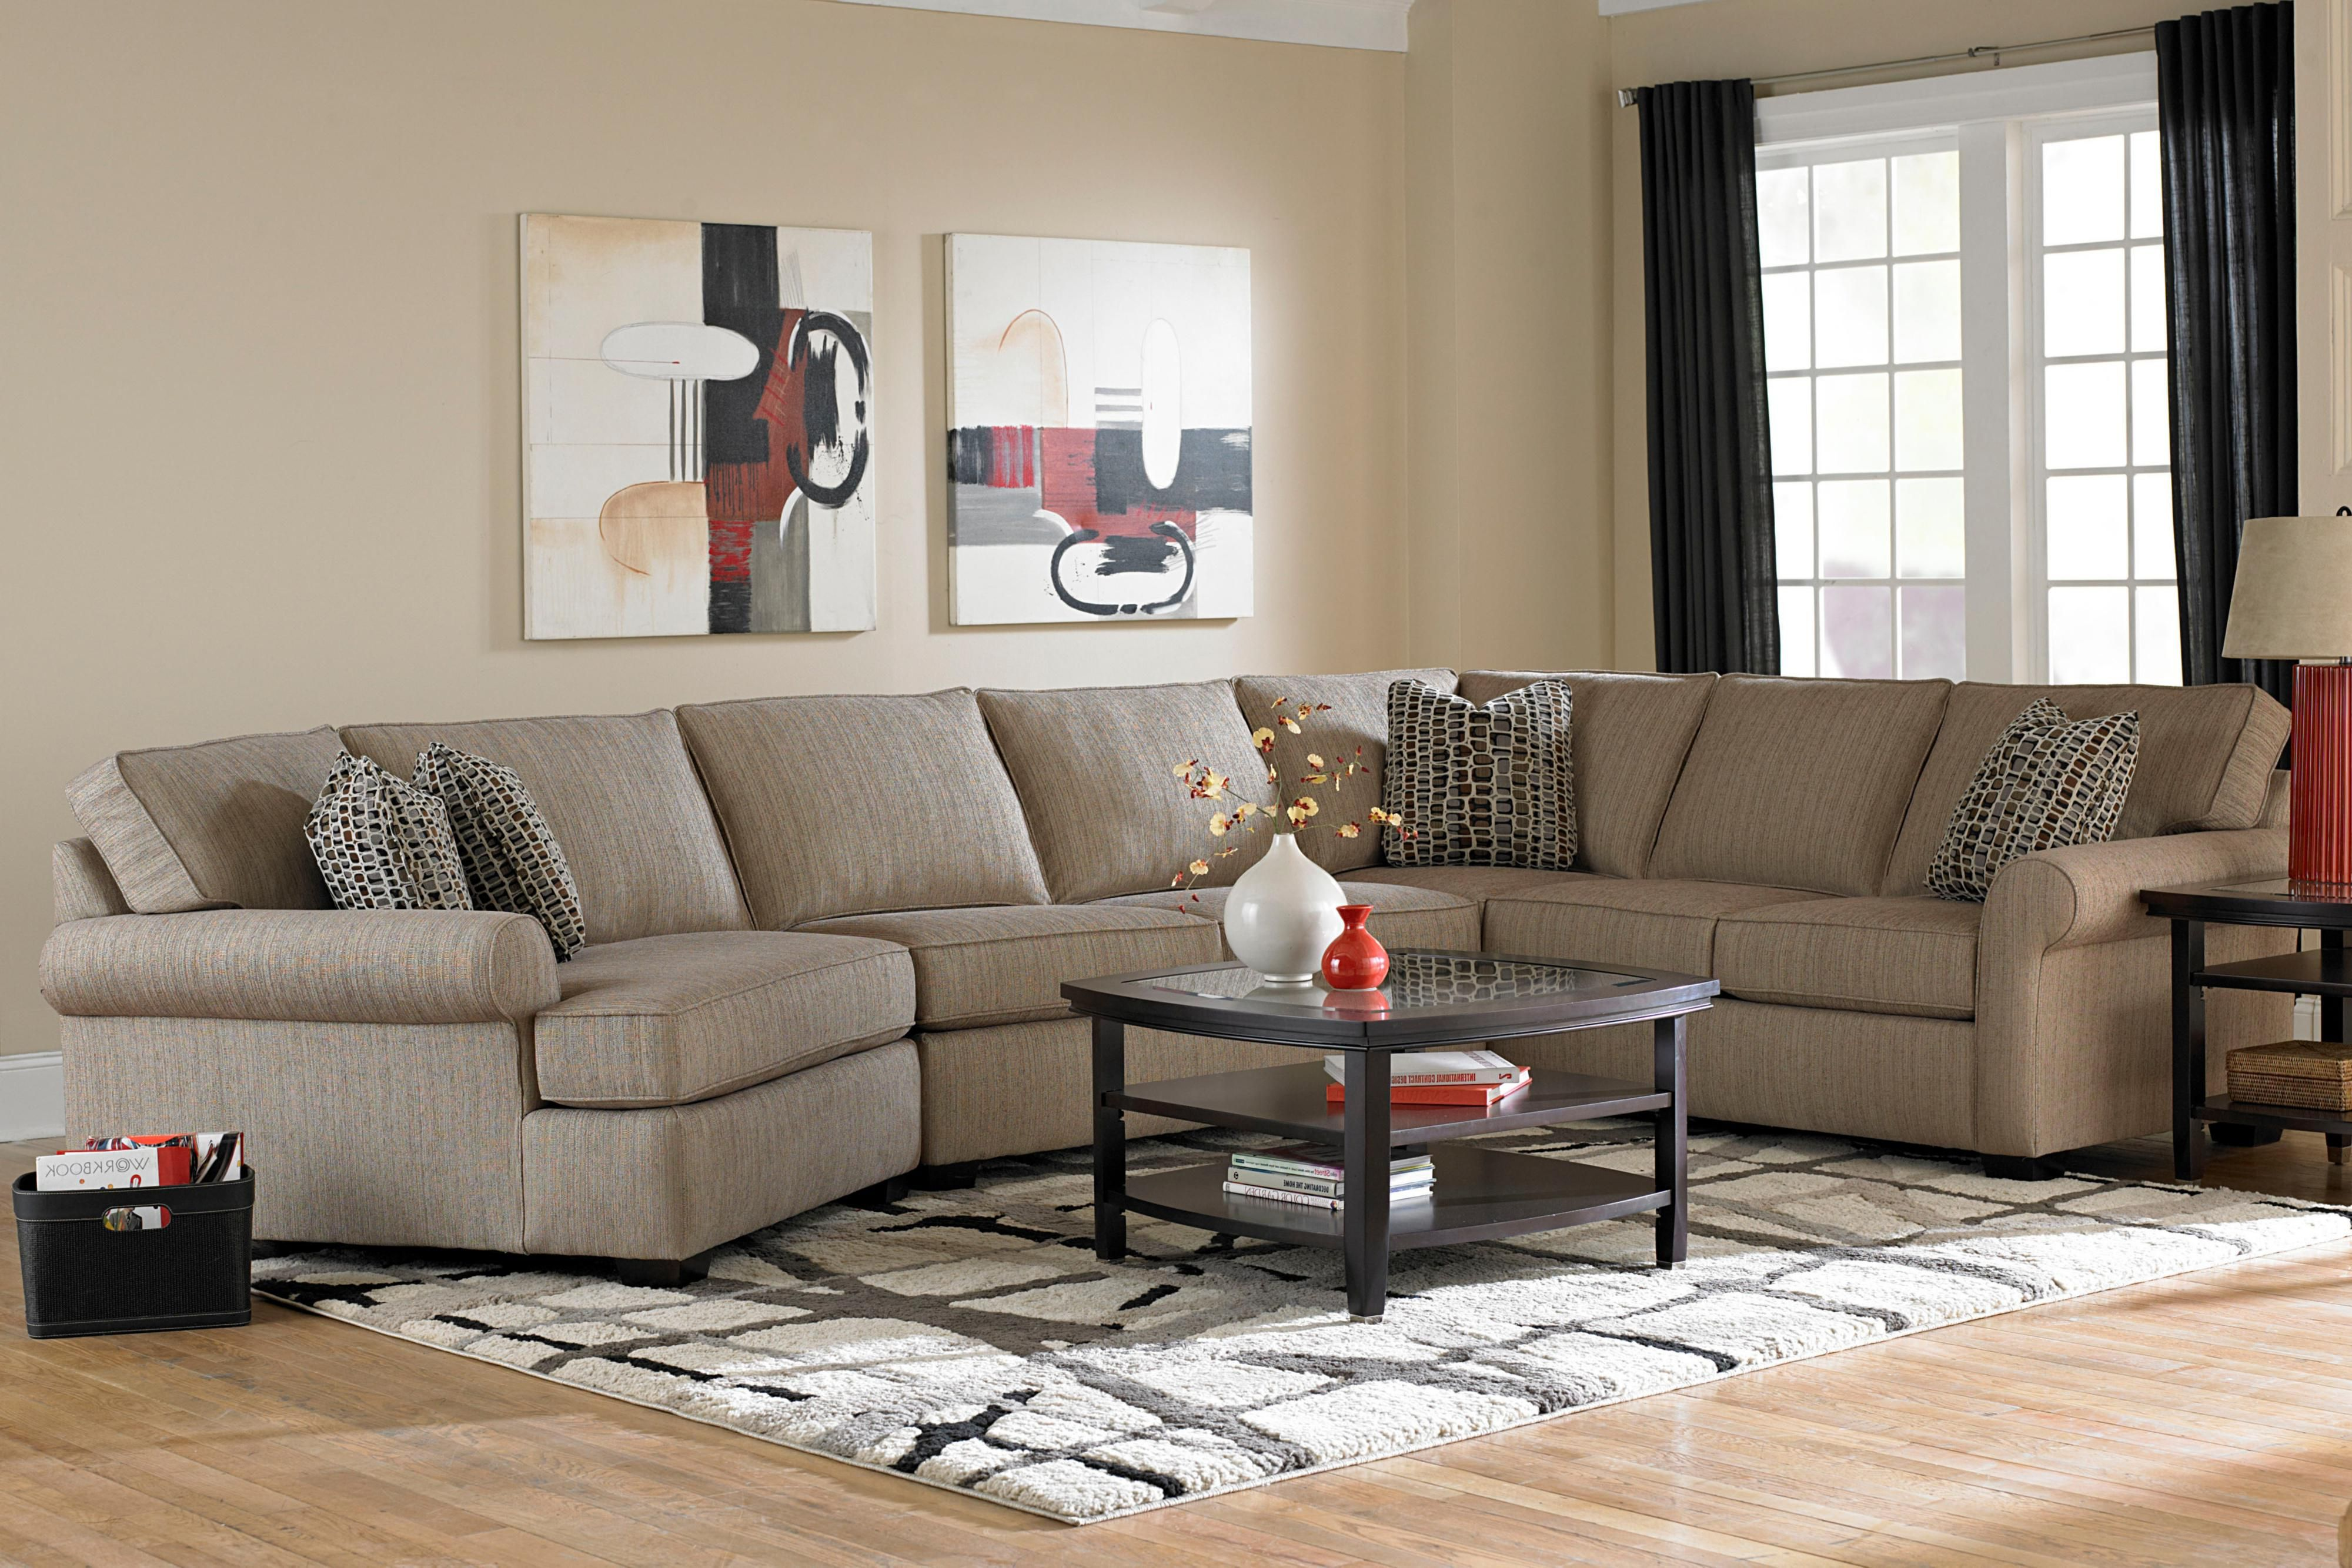 This Generously Sized Sectional Sofa Will Be The Perfect Addition To Your Living Room Or Family Broyhill Furniture Transitional Sectional Sofas Sectional Sofa